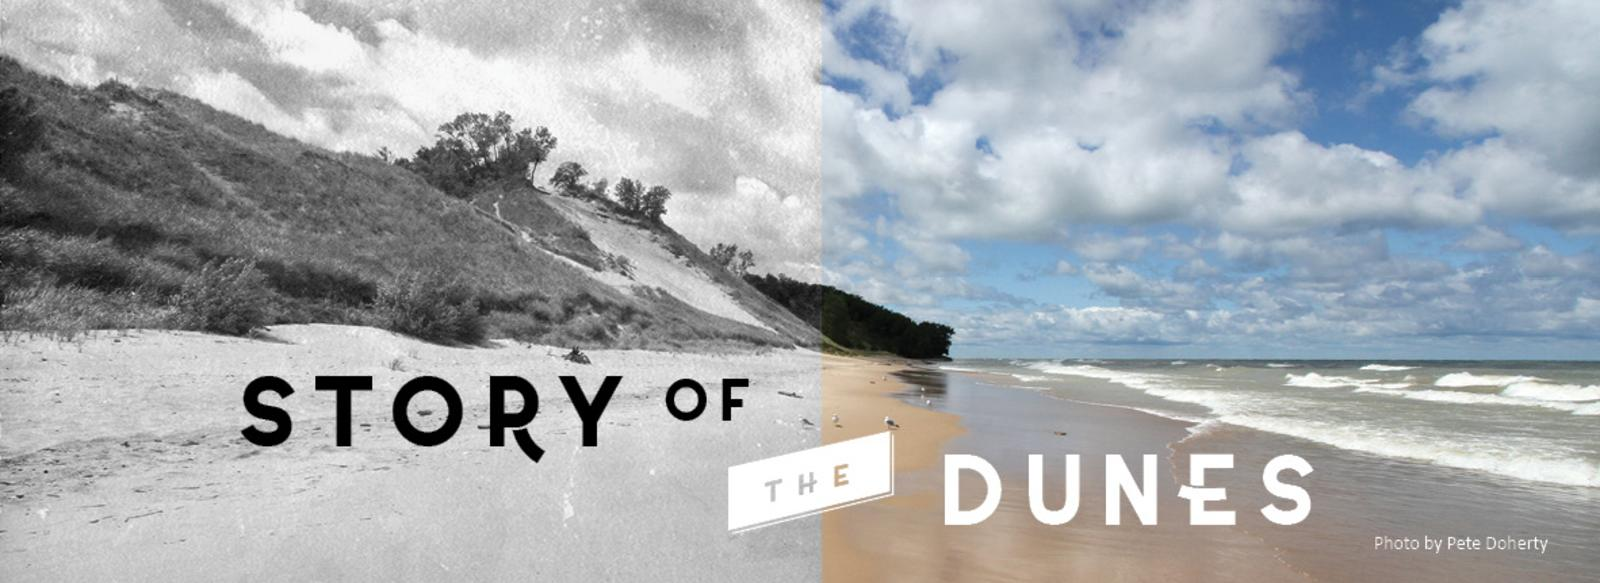 Story of the Indiana Dunes